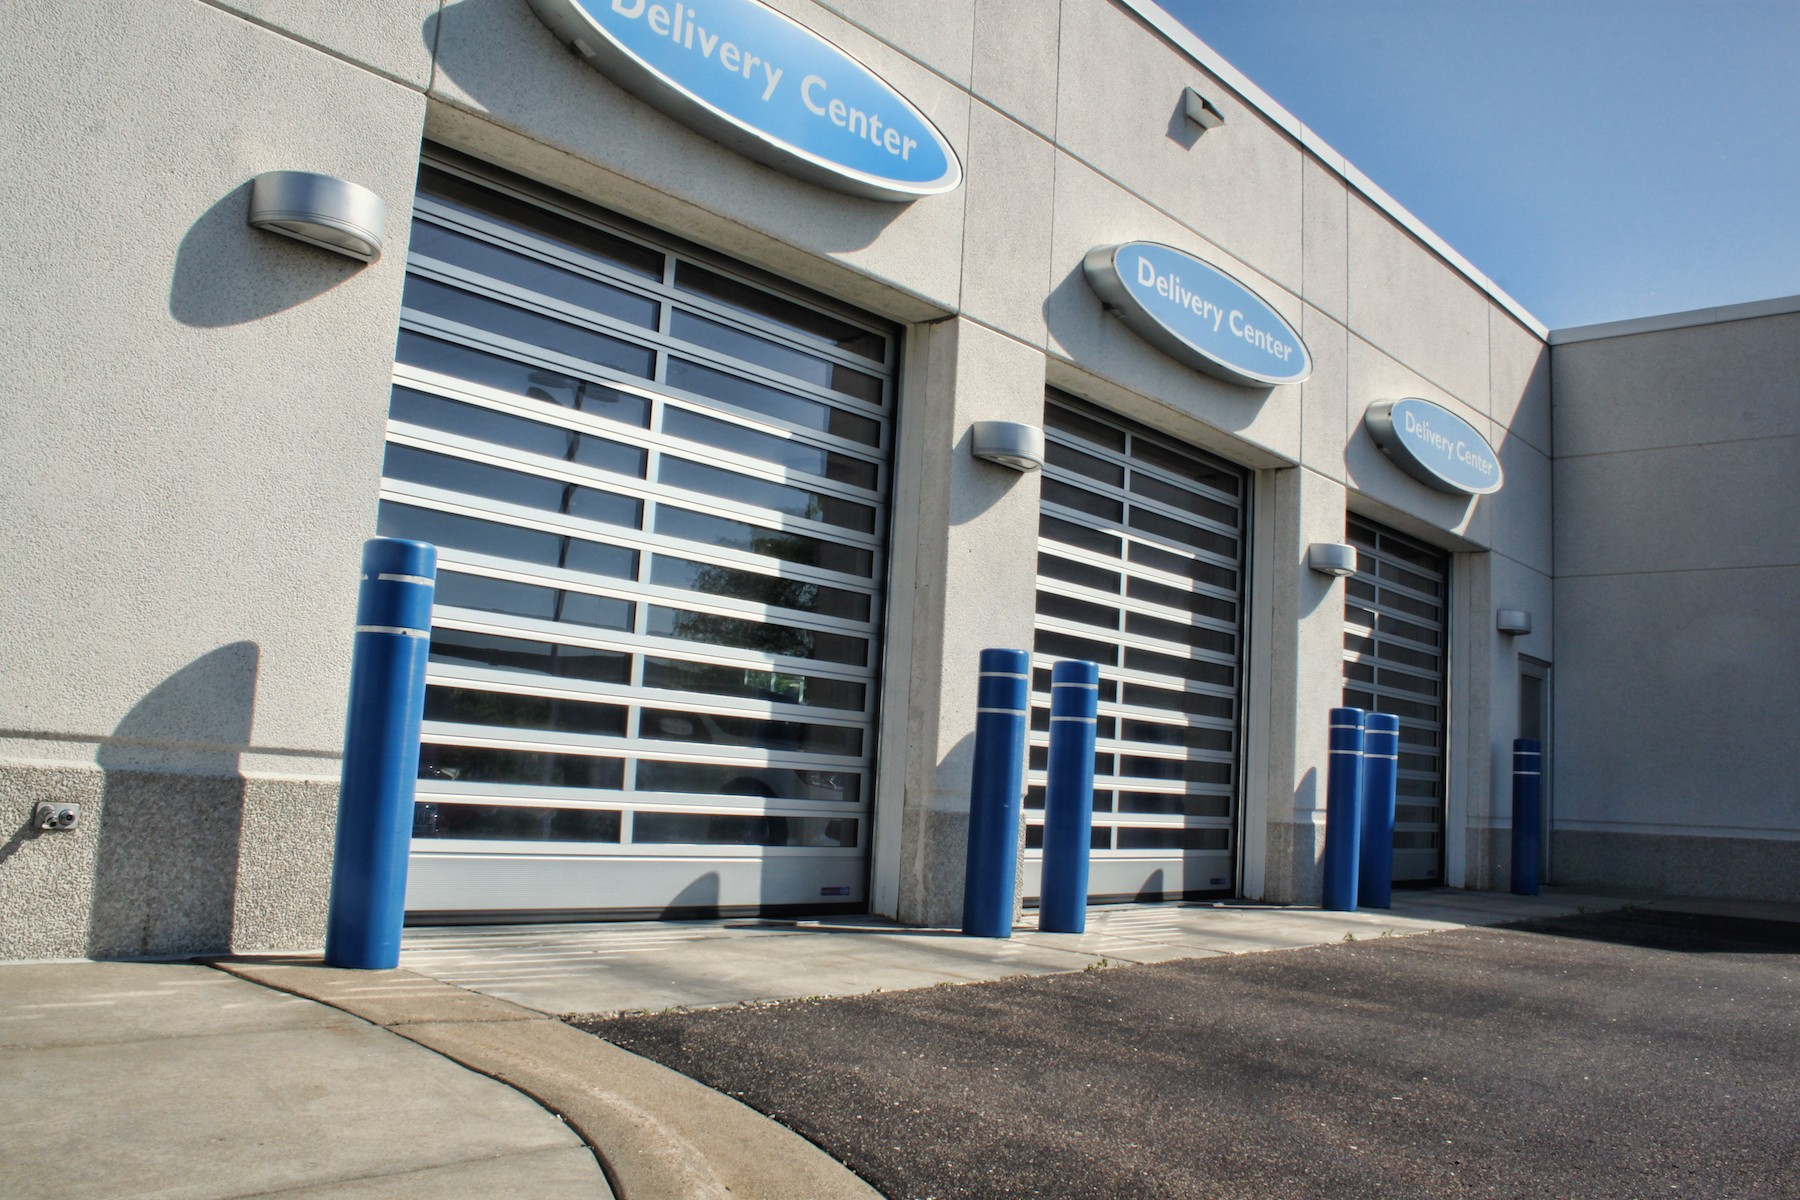 Service Doors - Aluminum doors create a clean style that is perfect for automotive showrooms and repair centers, service stations, car washes, fire houses, restaurants, and sports complexes. These doors can be mounted stationary or operative as a stylish alternative for al fresco situations.